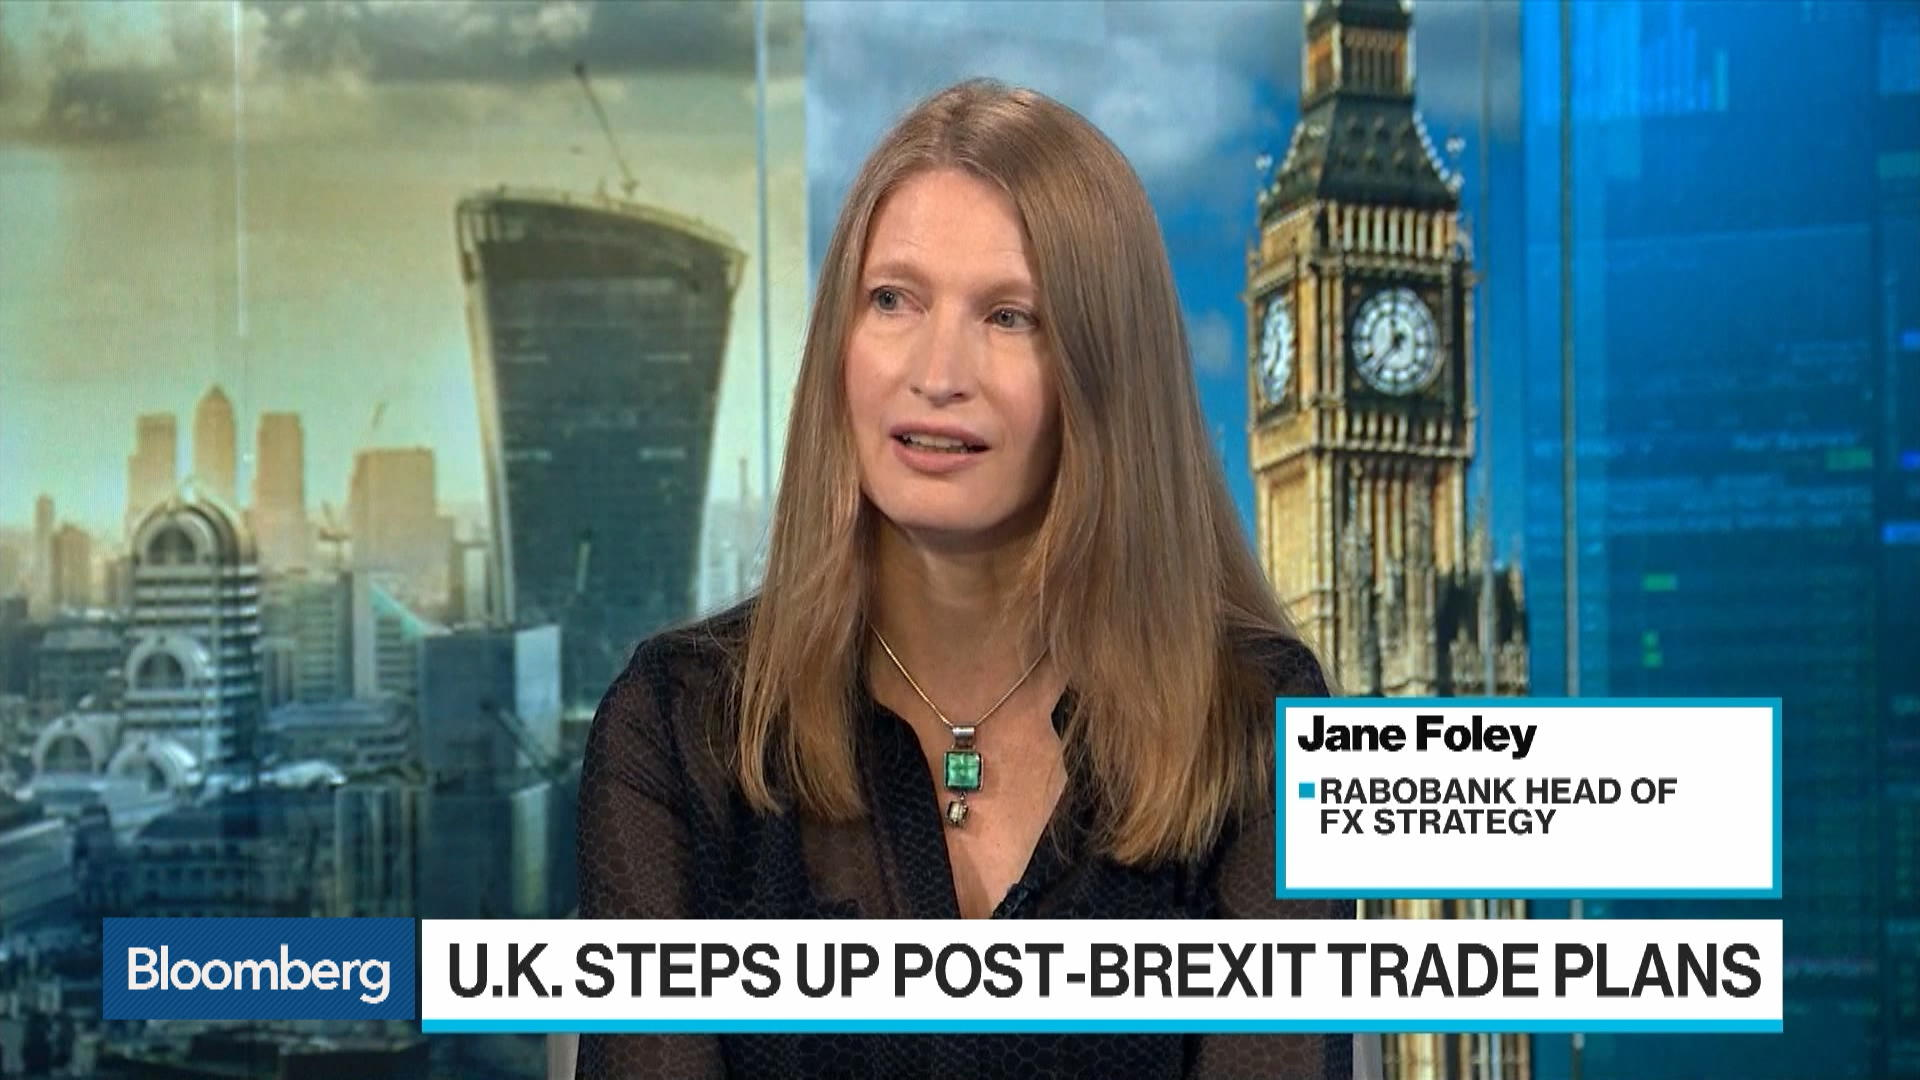 Brexit Delay Chance Still Seen by Pound Traders, Rabobank's Foley Says